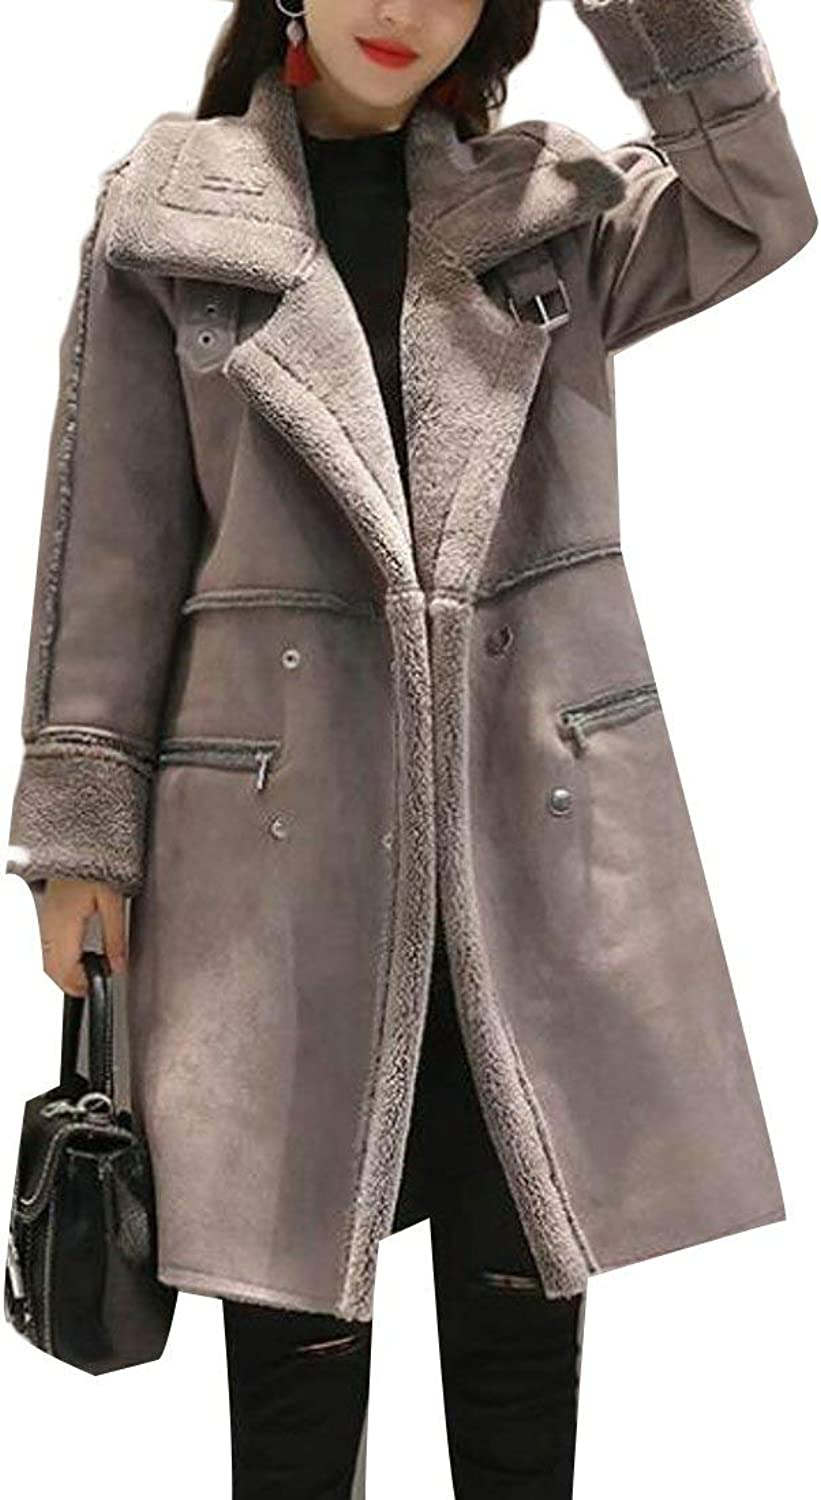 BU2H Womens Comfy Trench Coat Hooded Suede Lamb Wool Warm Quilted Jacket